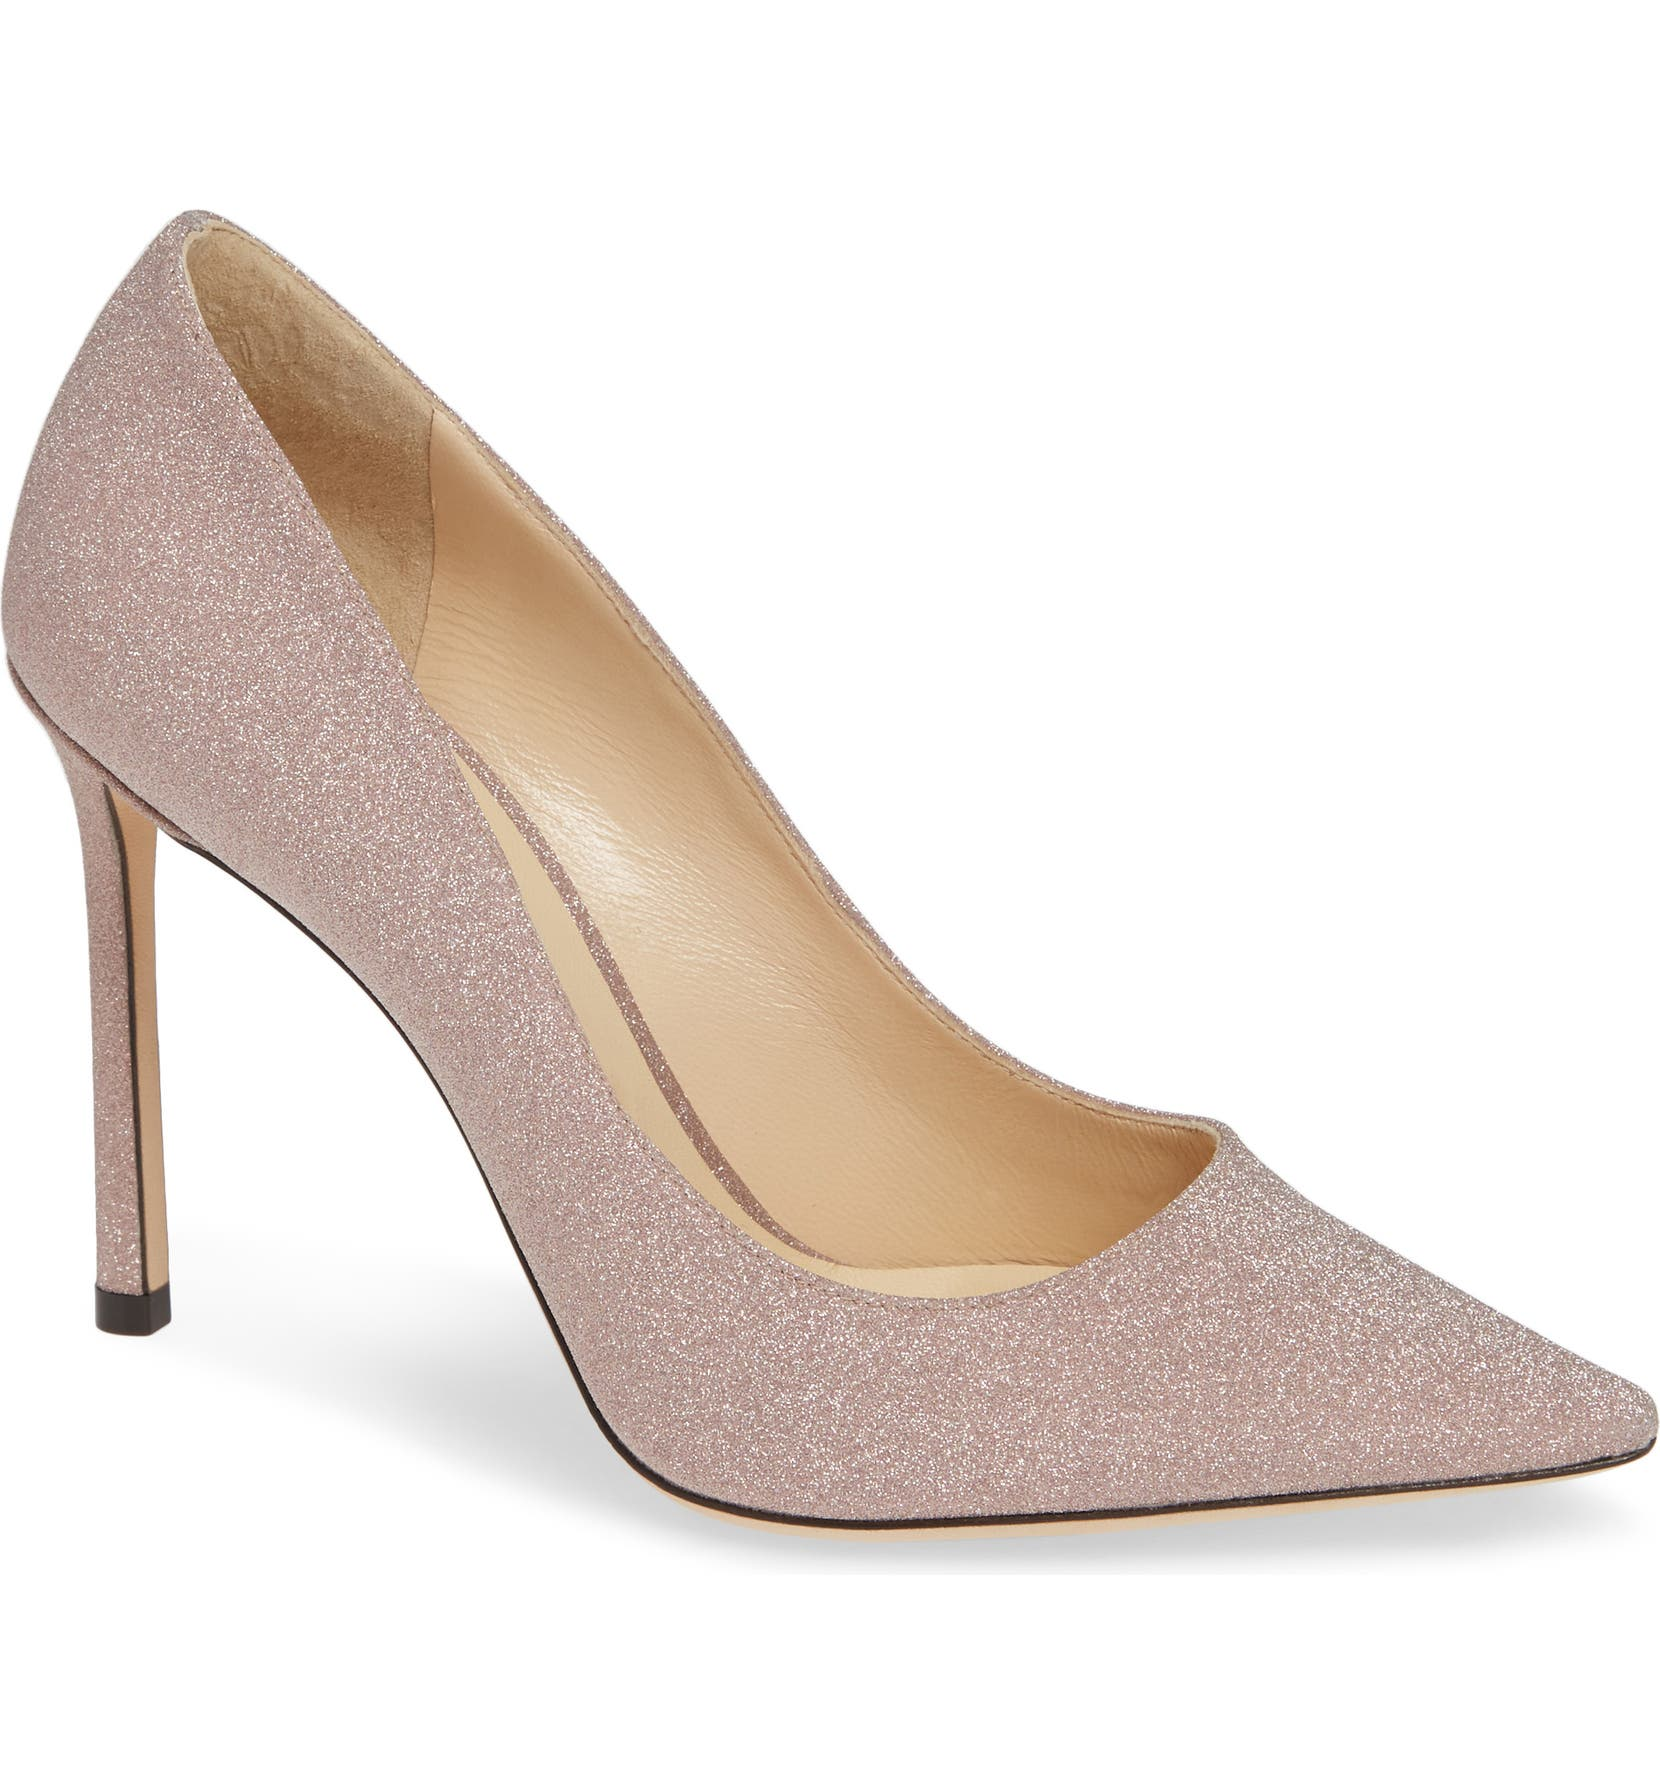 7d47a4389b2 Jimmy Choo Romy Glitter Pump (Women)